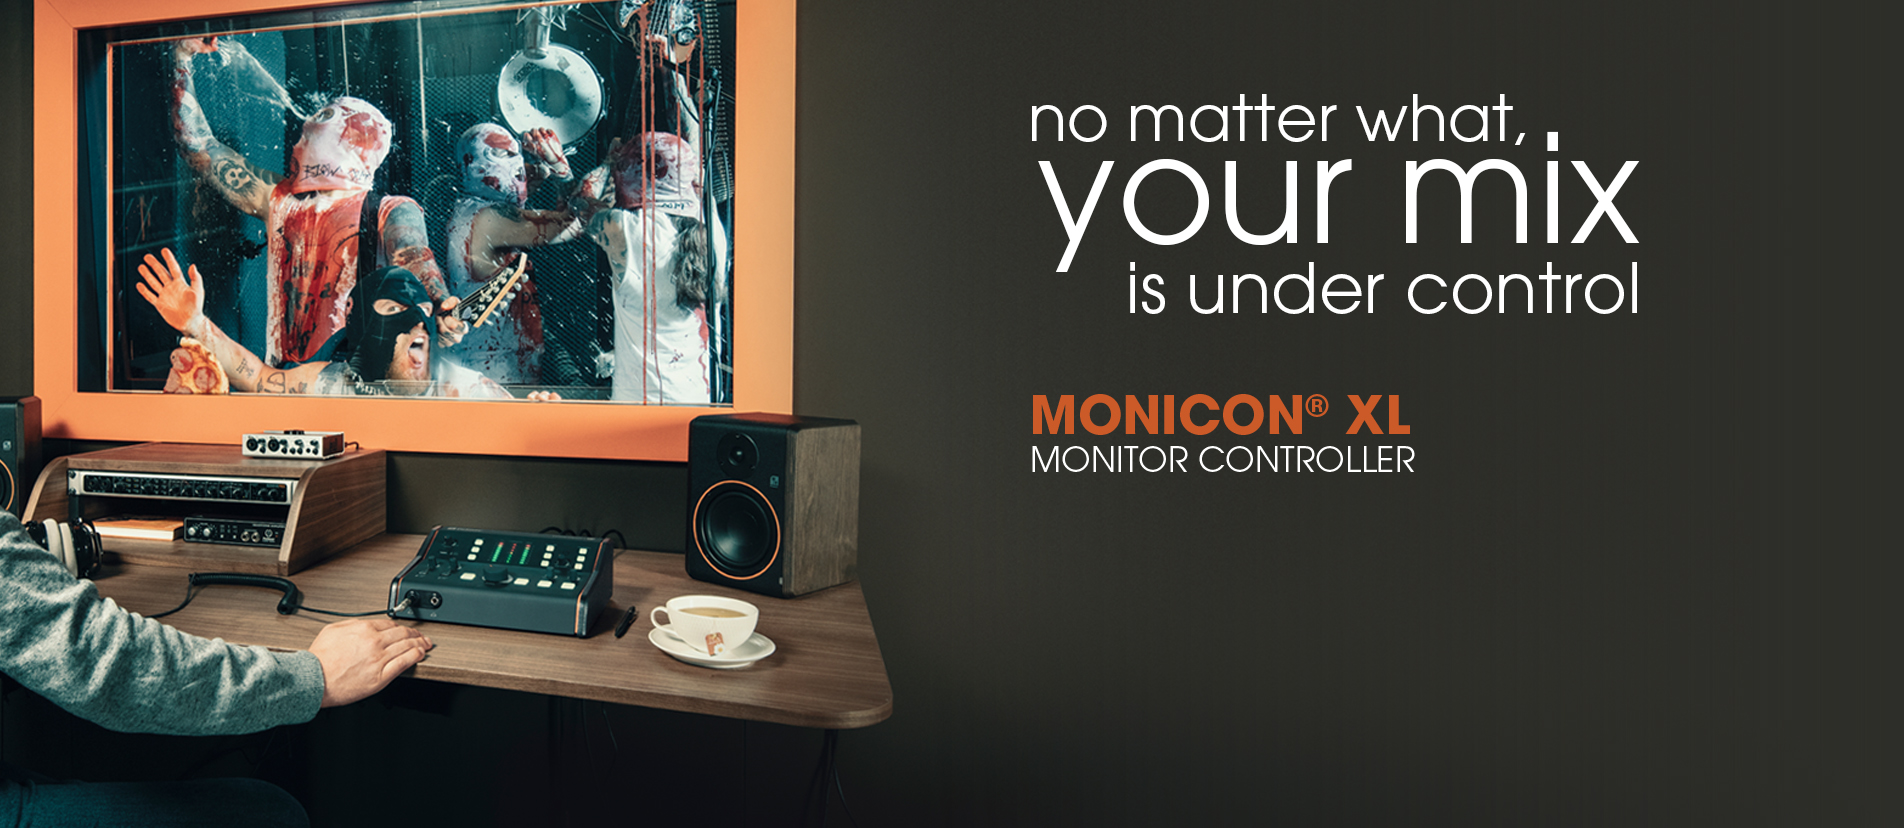 MONICON XL